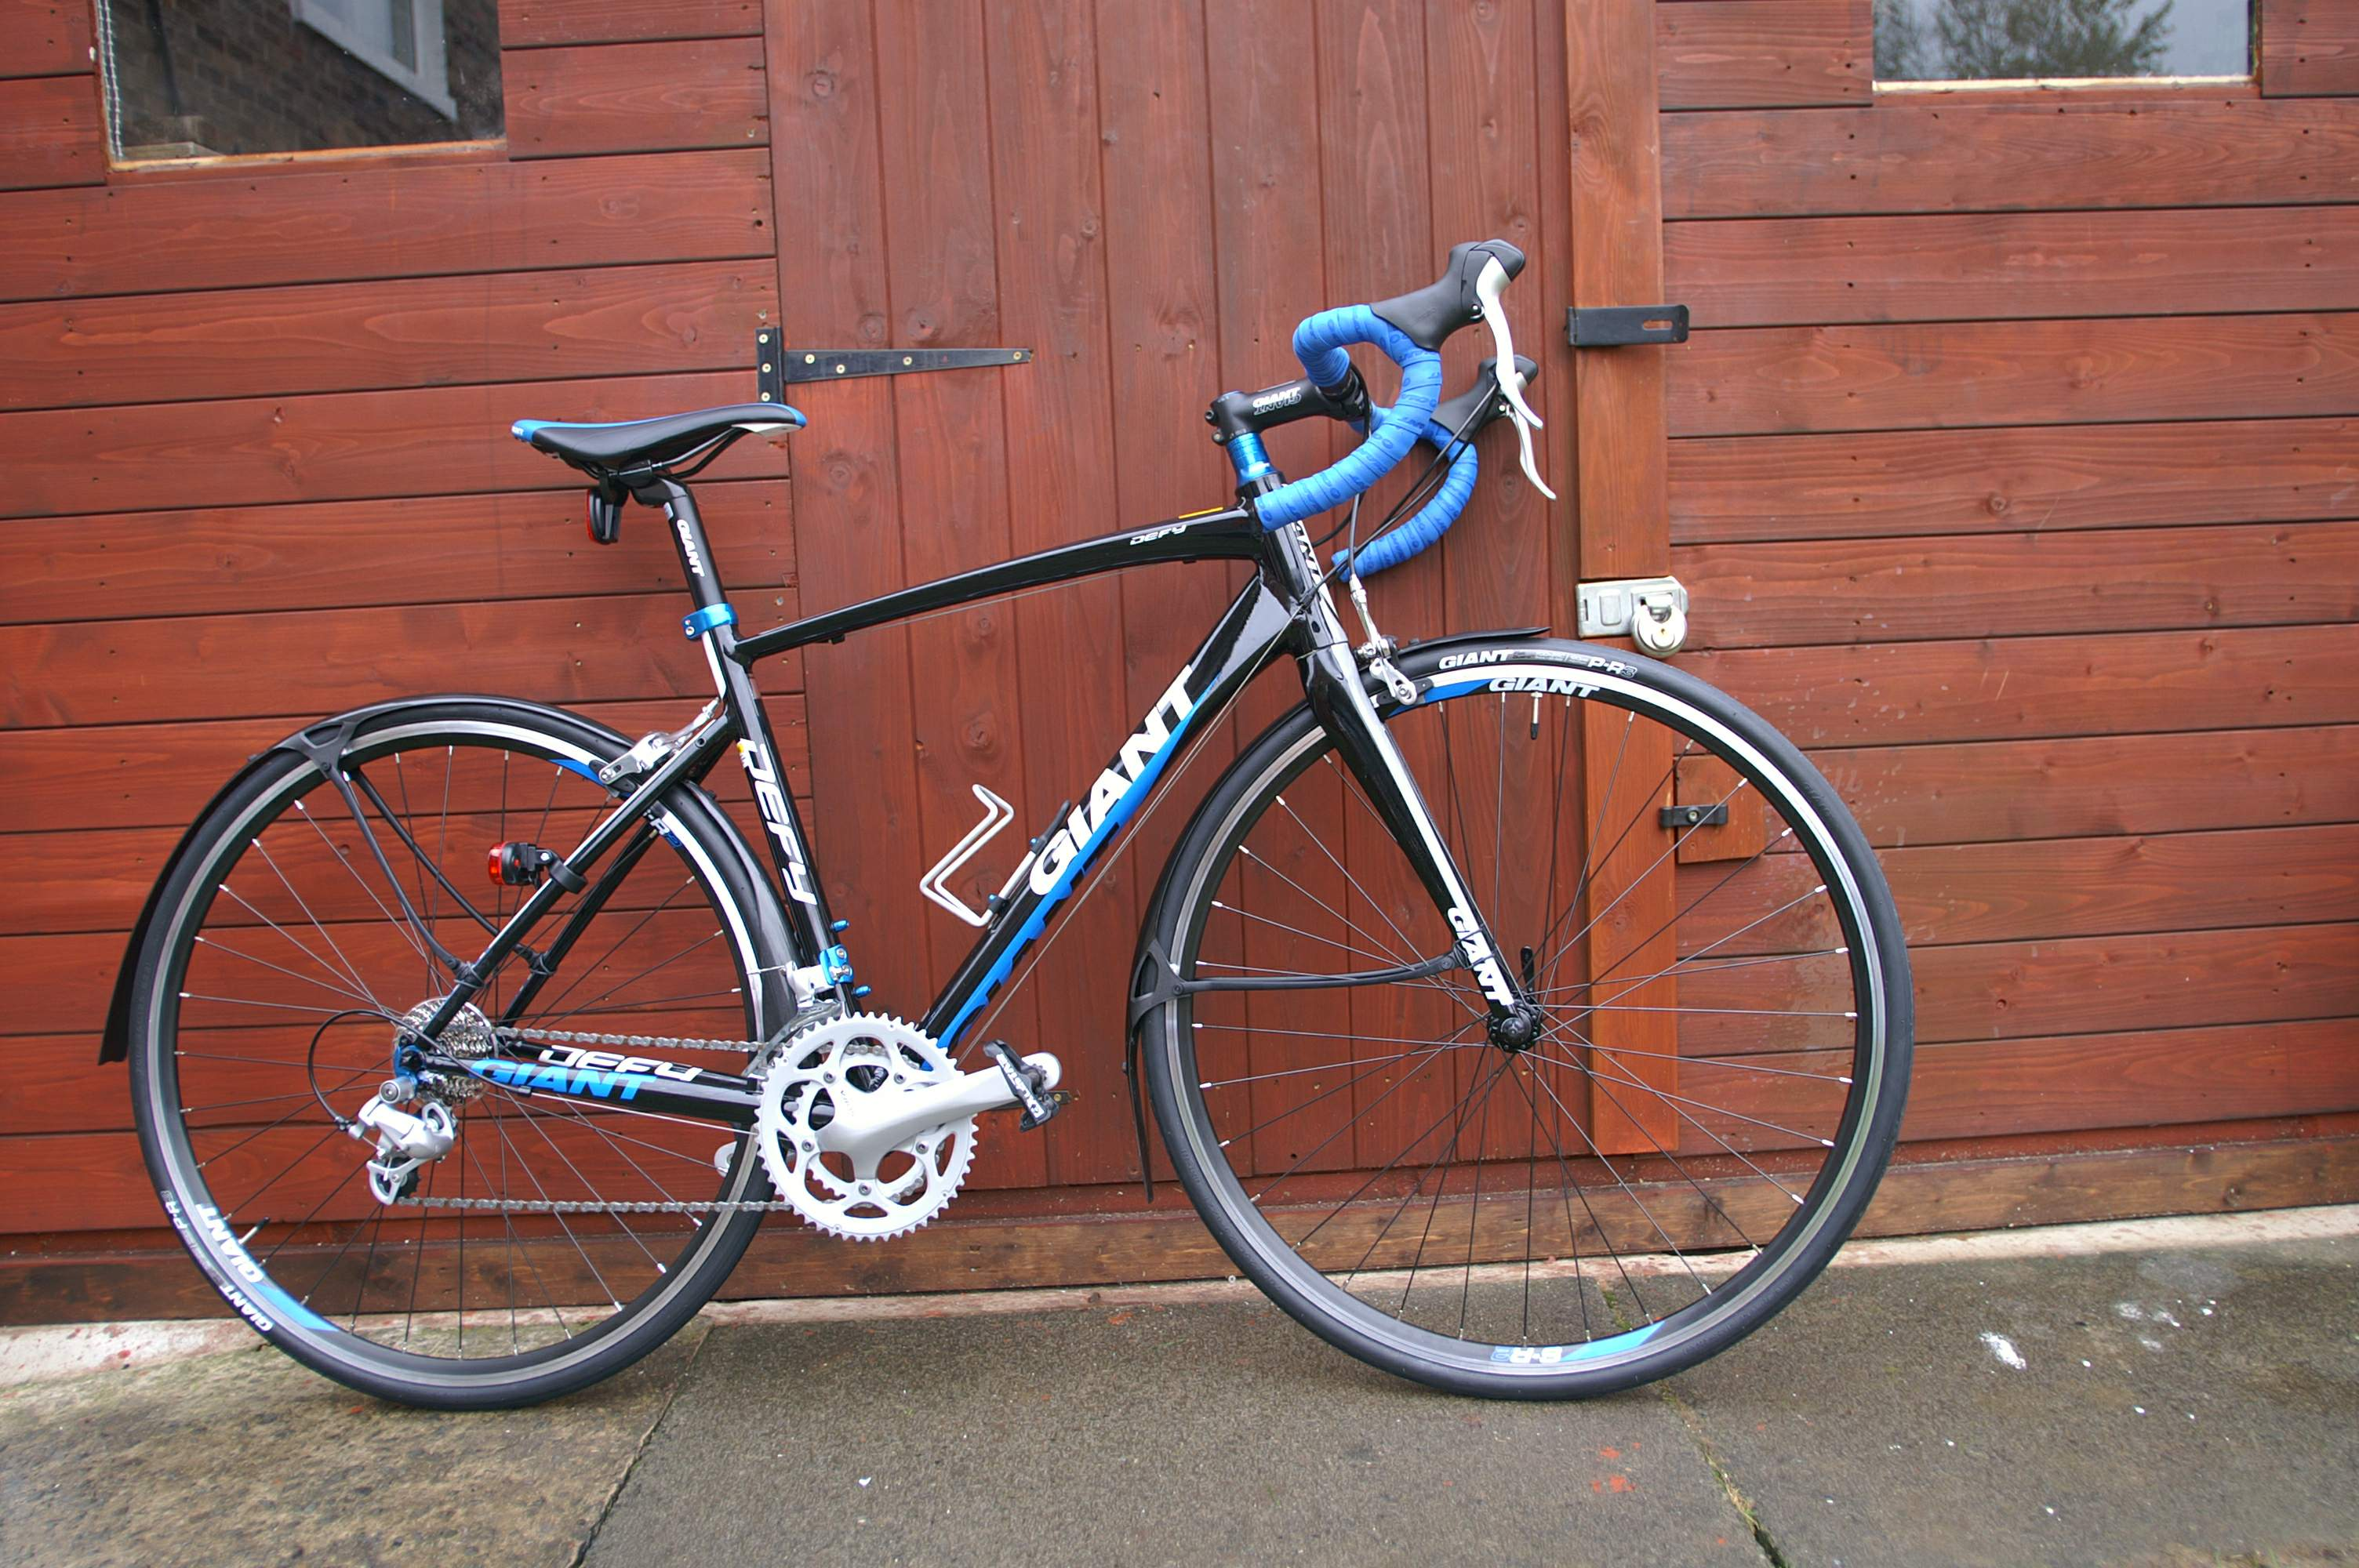 Lightweight Mudguards For Giant Defy 2 Cyclechat Cycling Forum